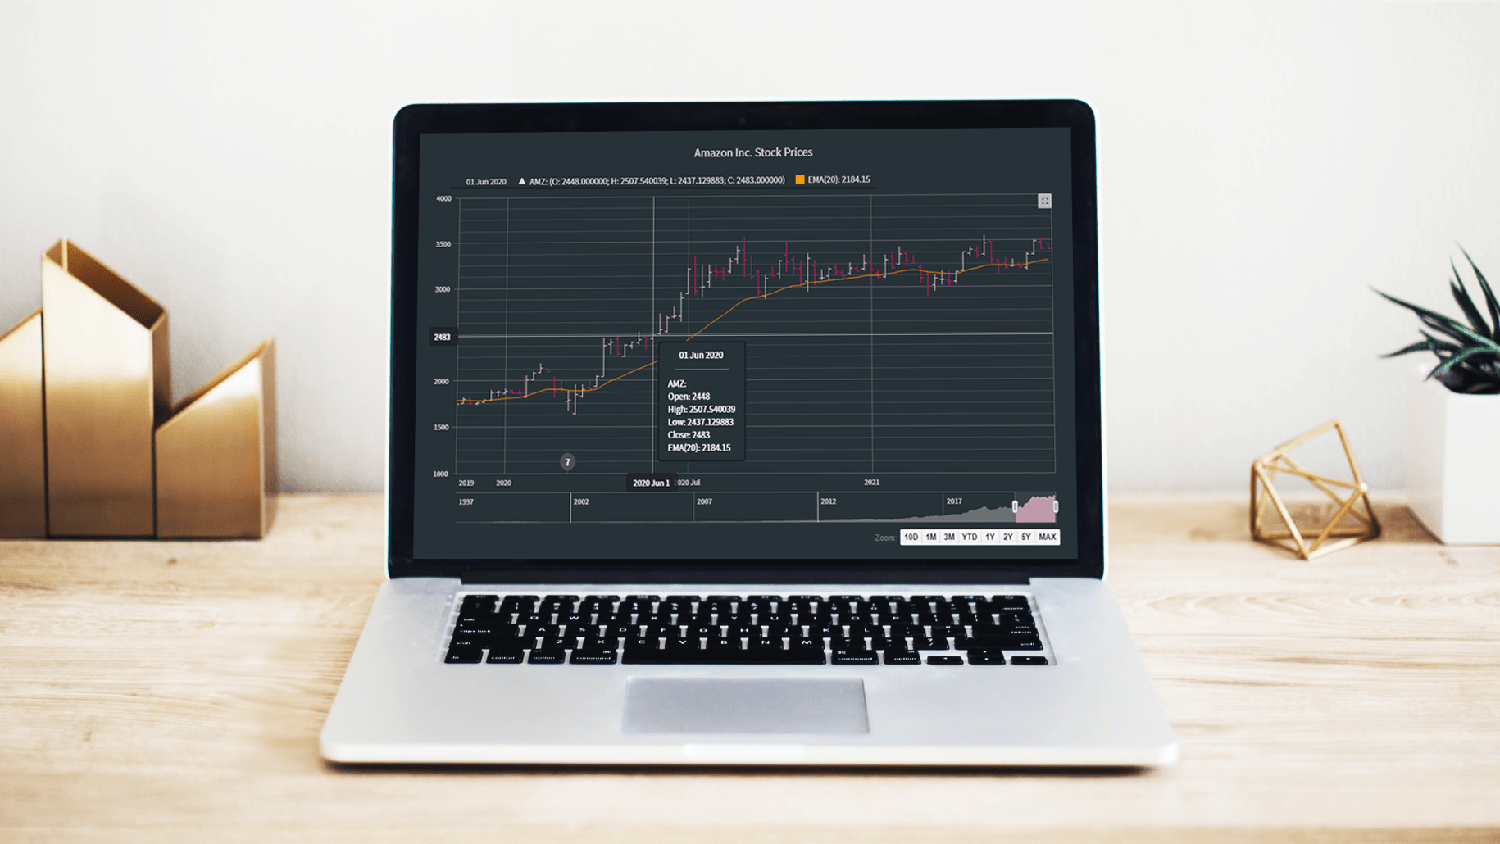 Interactive Open-High-Low-Close (OHLC) chart built with JavaScript on a laptop screen